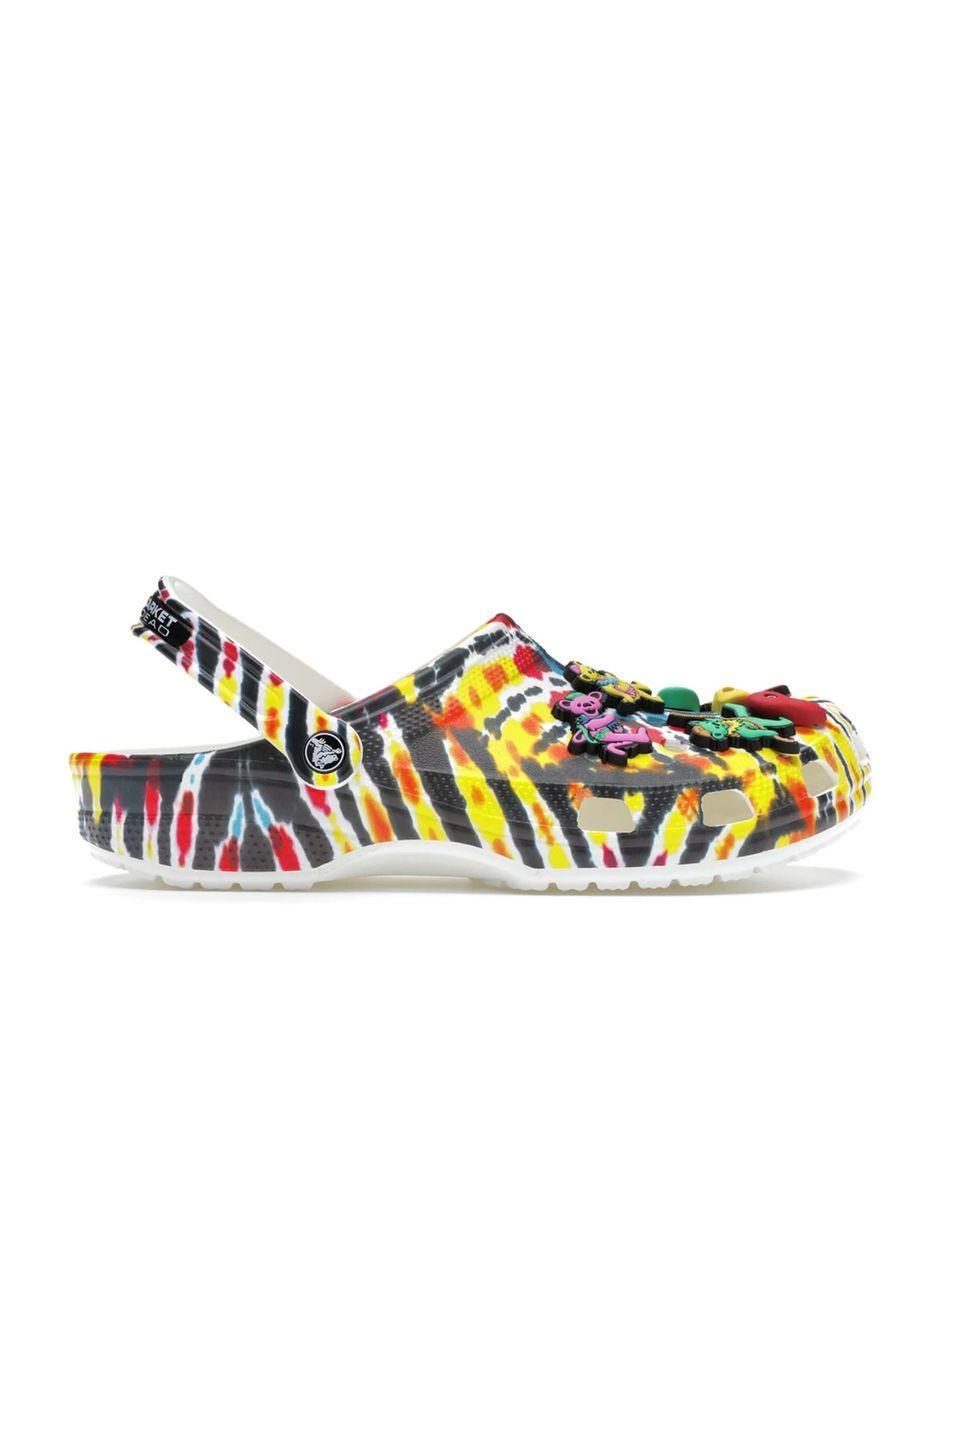 """<p><a class=""""link rapid-noclick-resp"""" href=""""https://go.redirectingat.com?id=127X1599956&url=https%3A%2F%2Fstockx.com%2Fcrocs-classic-clog-grateful-dead-x-chinatown-market&sref=https%3A%2F%2Fwww.harpersbazaar.com%2Fuk%2Ffashion%2Ffashion-news%2Fg34504089%2Fhottest-products-2020%2F"""" rel=""""nofollow noopener"""" target=""""_blank"""" data-ylk=""""slk:SHOP NOW"""">SHOP NOW</a></p><p>In ninth position is the Grateful Dead x Chinatown Market x Crocs tie-dye clogs, which generated a virtual queue of over 45,000 people hoping to buy a pair on launch day. </p><p>""""With coronavirus tearing up the rule books, the polarising resin slip-ons are having a fashion moment, with searches for Crocs up 41 per cent this quarter. Shortly after the quarter ended, Crocs announced an upcoming collaboration with Justin Bieber, giving clog lovers even more to look forward to.""""</p><p>Shoes, from £72, <a href=""""https://go.redirectingat.com?id=127X1599956&url=https%3A%2F%2Fstockx.com%2Fcrocs-classic-clog-grateful-dead-x-chinatown-market&sref=https%3A%2F%2Fwww.harpersbazaar.com%2Fuk%2Ffashion%2Ffashion-news%2Fg34504089%2Fhottest-products-2020%2F"""" rel=""""nofollow noopener"""" target=""""_blank"""" data-ylk=""""slk:Crocs Classic Clog Grateful Dead"""" class=""""link rapid-noclick-resp"""">Crocs Classic Clog Grateful Dead</a></p>"""